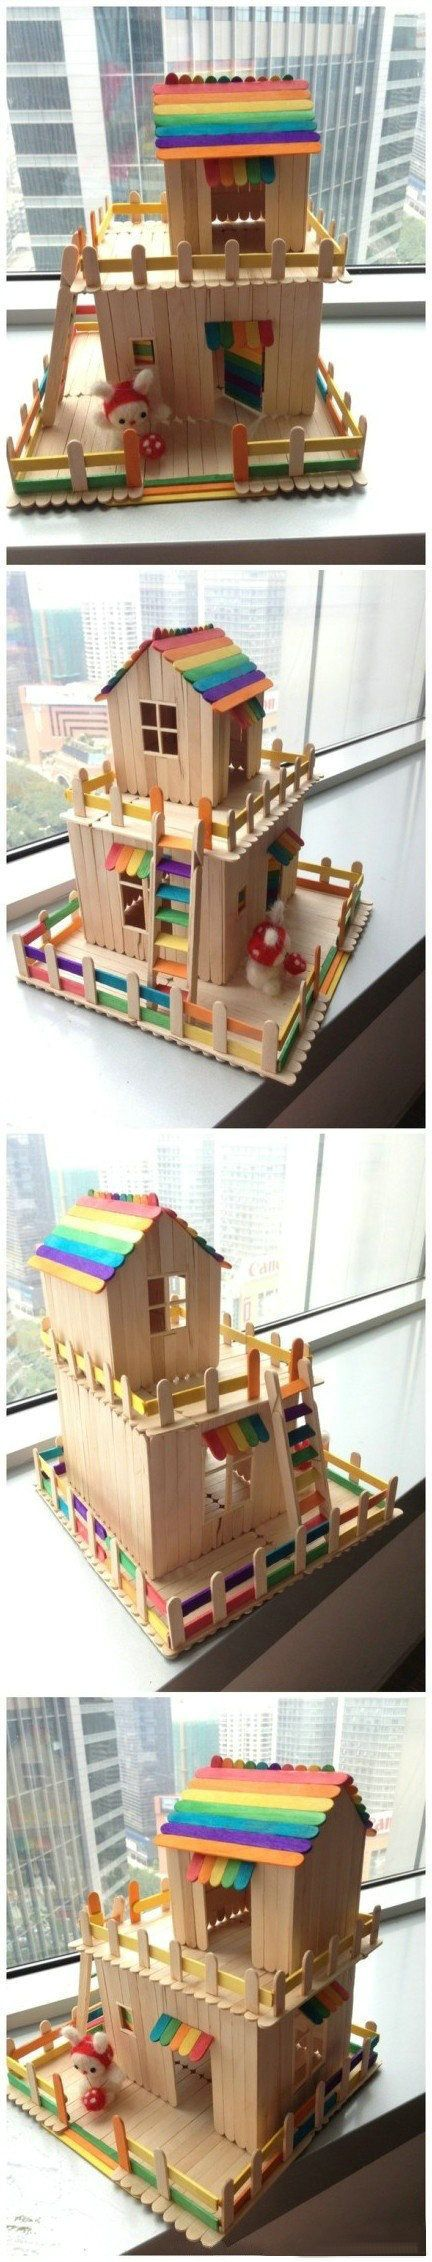 a BIG colorful house using craftsticks